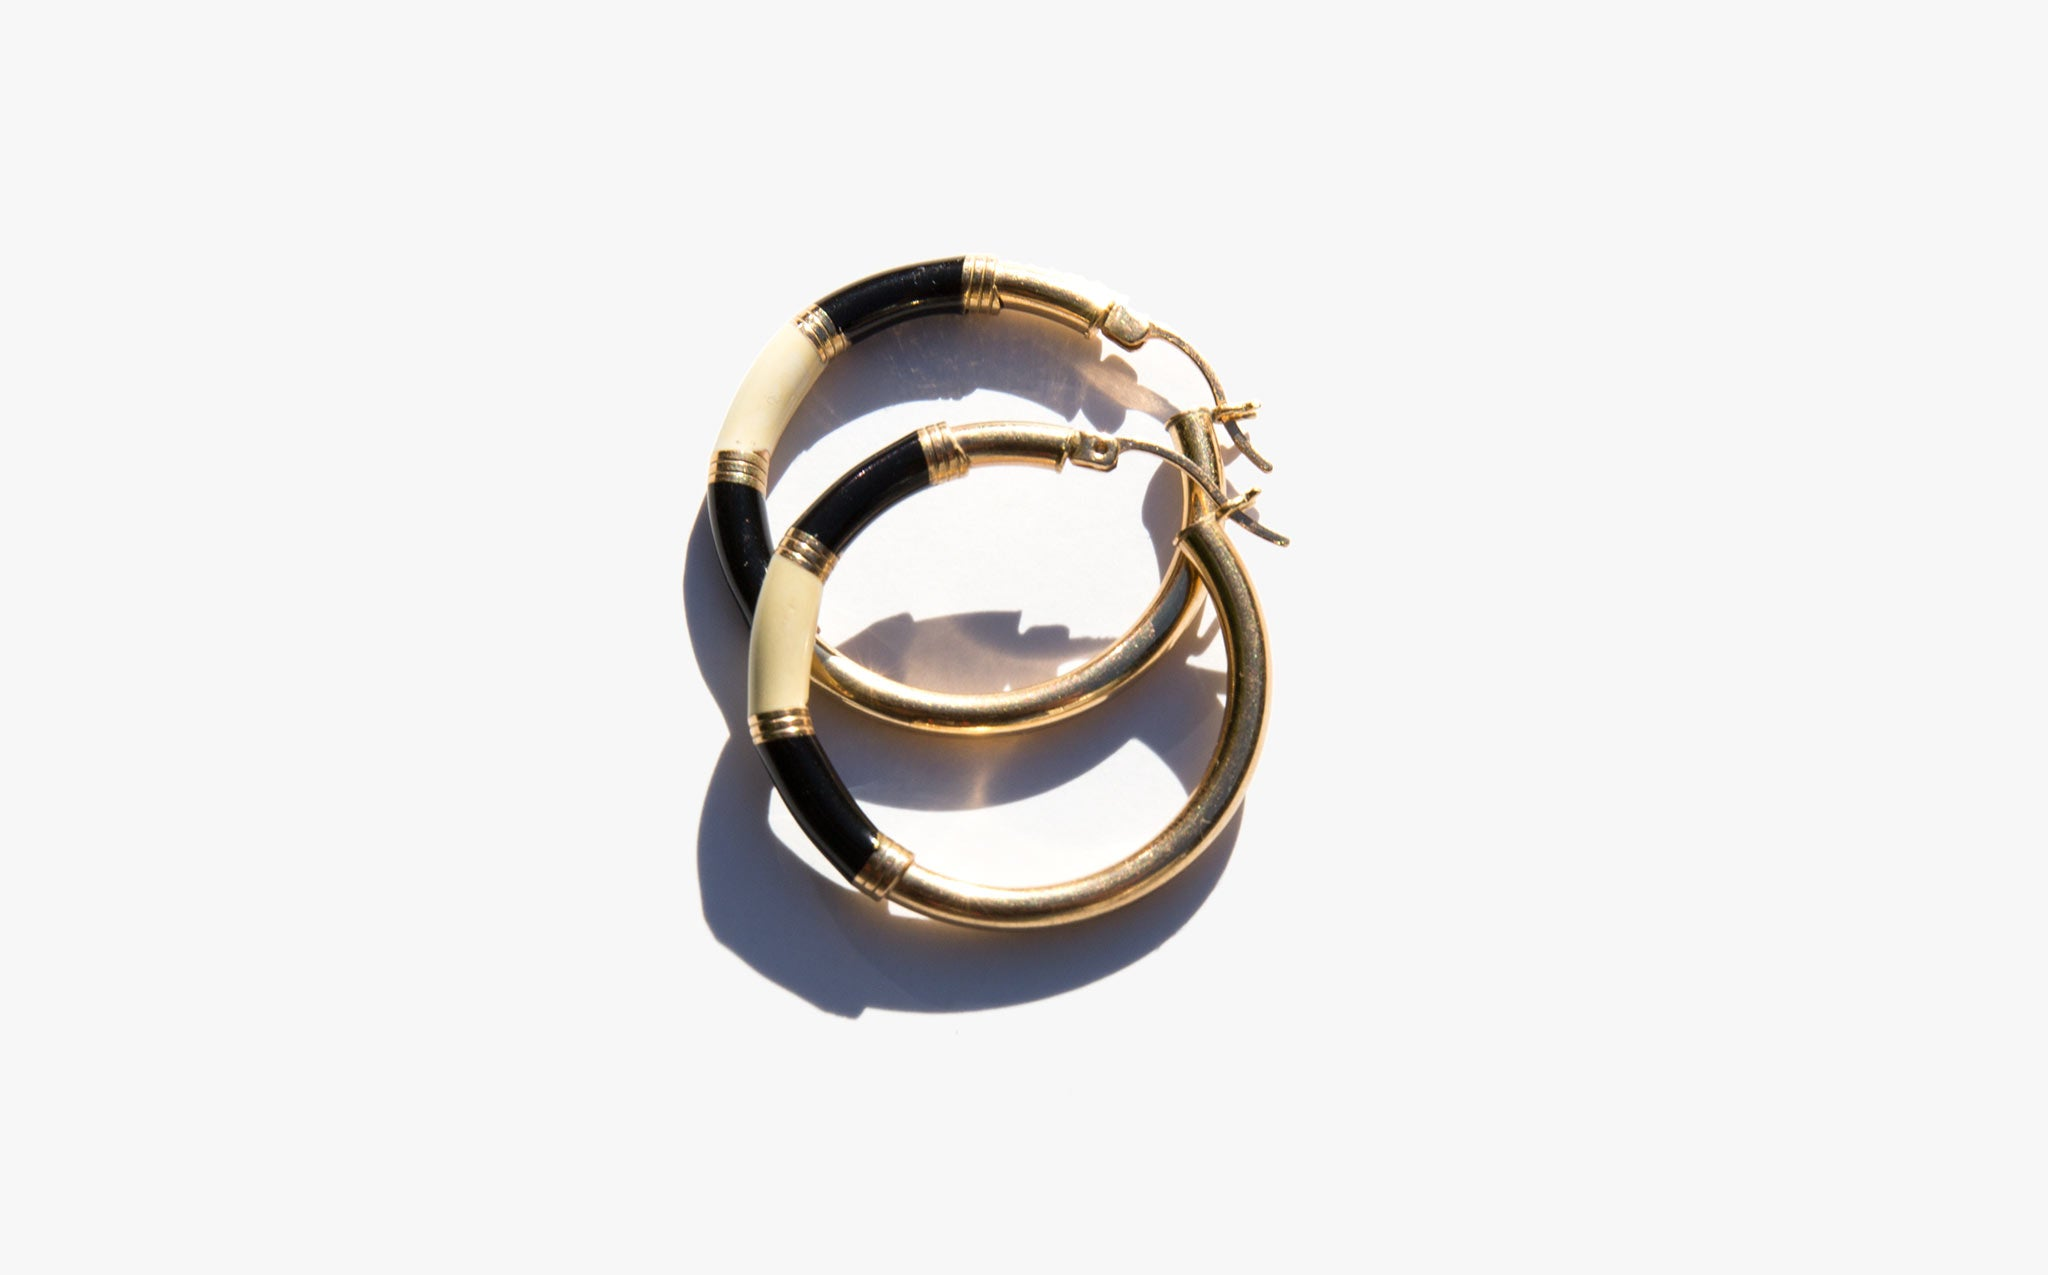 14K Gold and Enamel Hoops